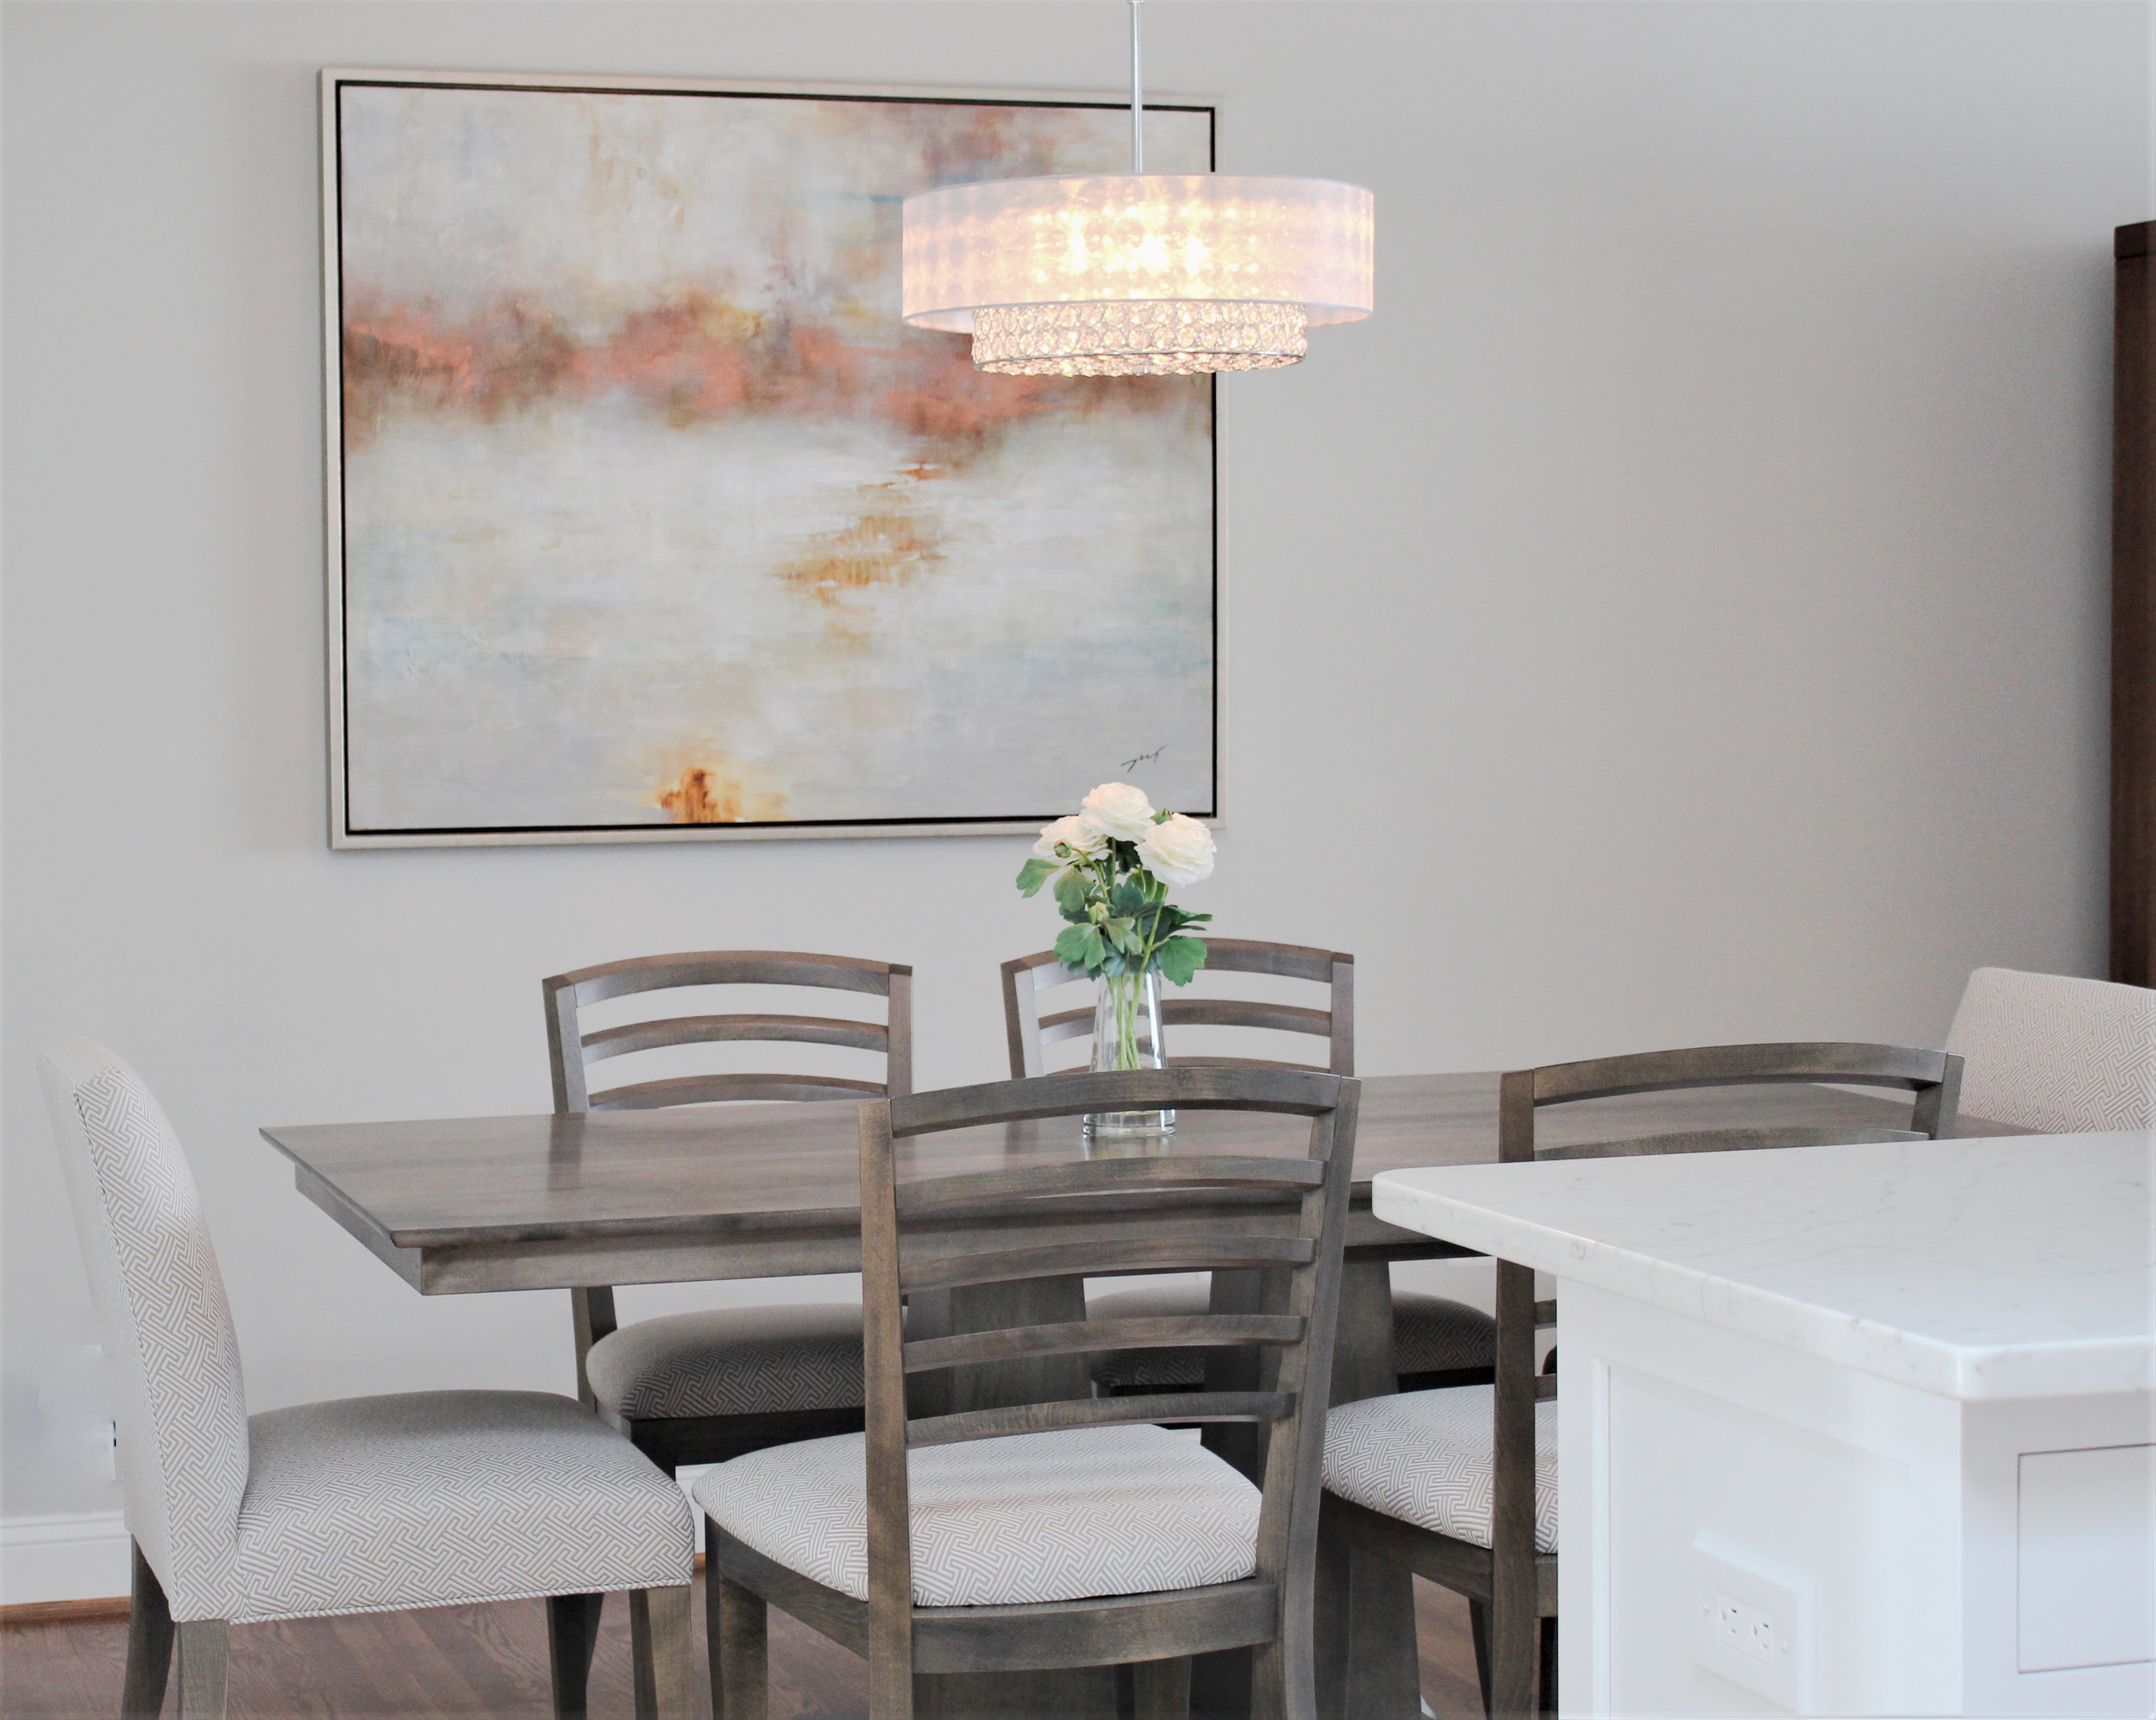 An open concept kitchen was created by removing the dining wall. Shades of white and taupe are carried thought out the space showing up in the glass tile backsplash, dining light & furniture. Simple recessed lights and white quartz counters keep the space clean and bright which accent the glimmer of the stainless appliances, backsplash and dining light.